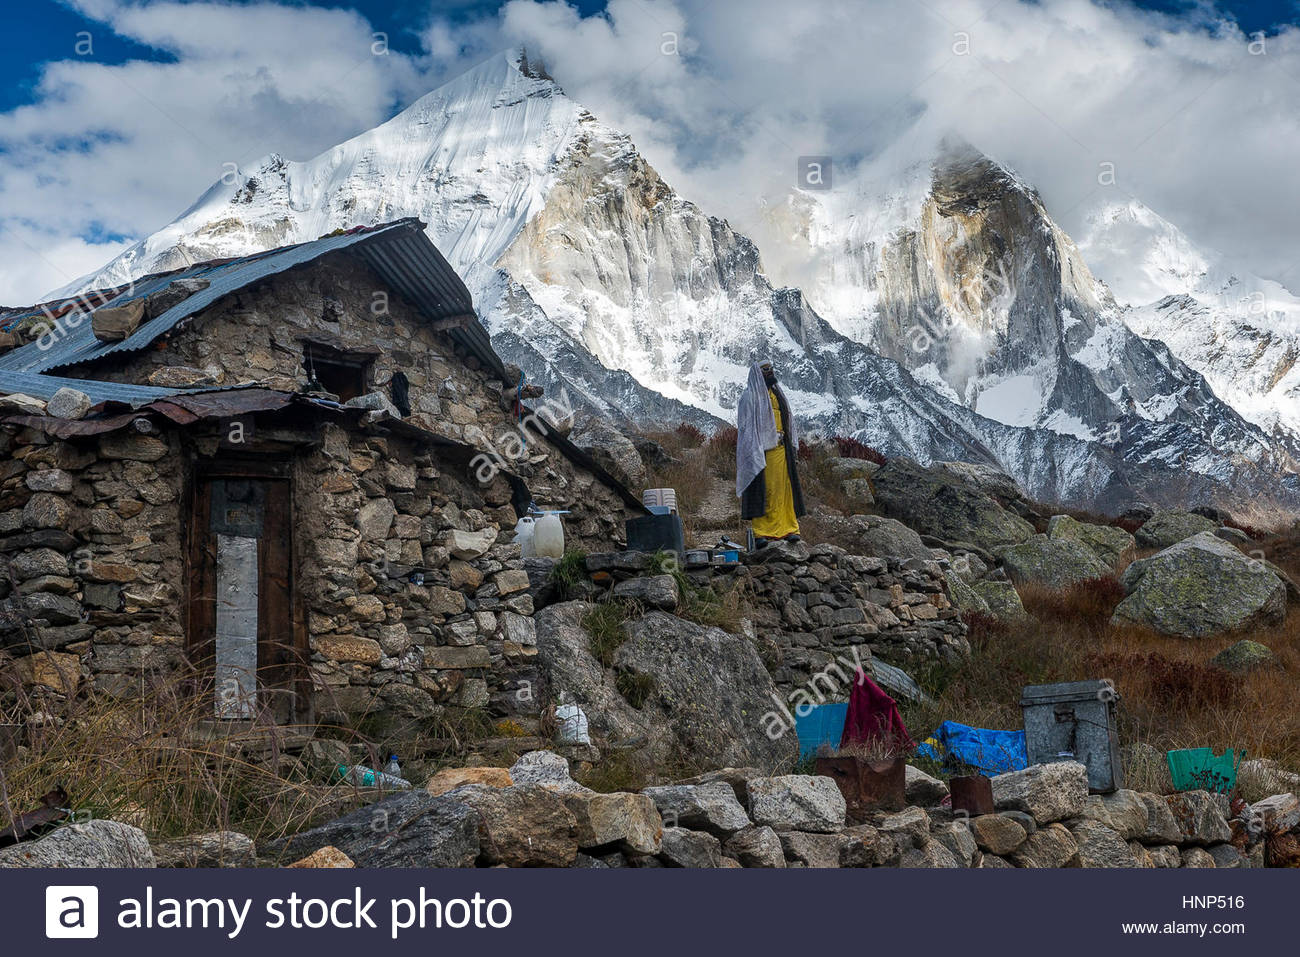 A sadhu resides in a stone ashram at 14,200 feet in the Garhwal range of the Indian Himalaya. - Stock Image